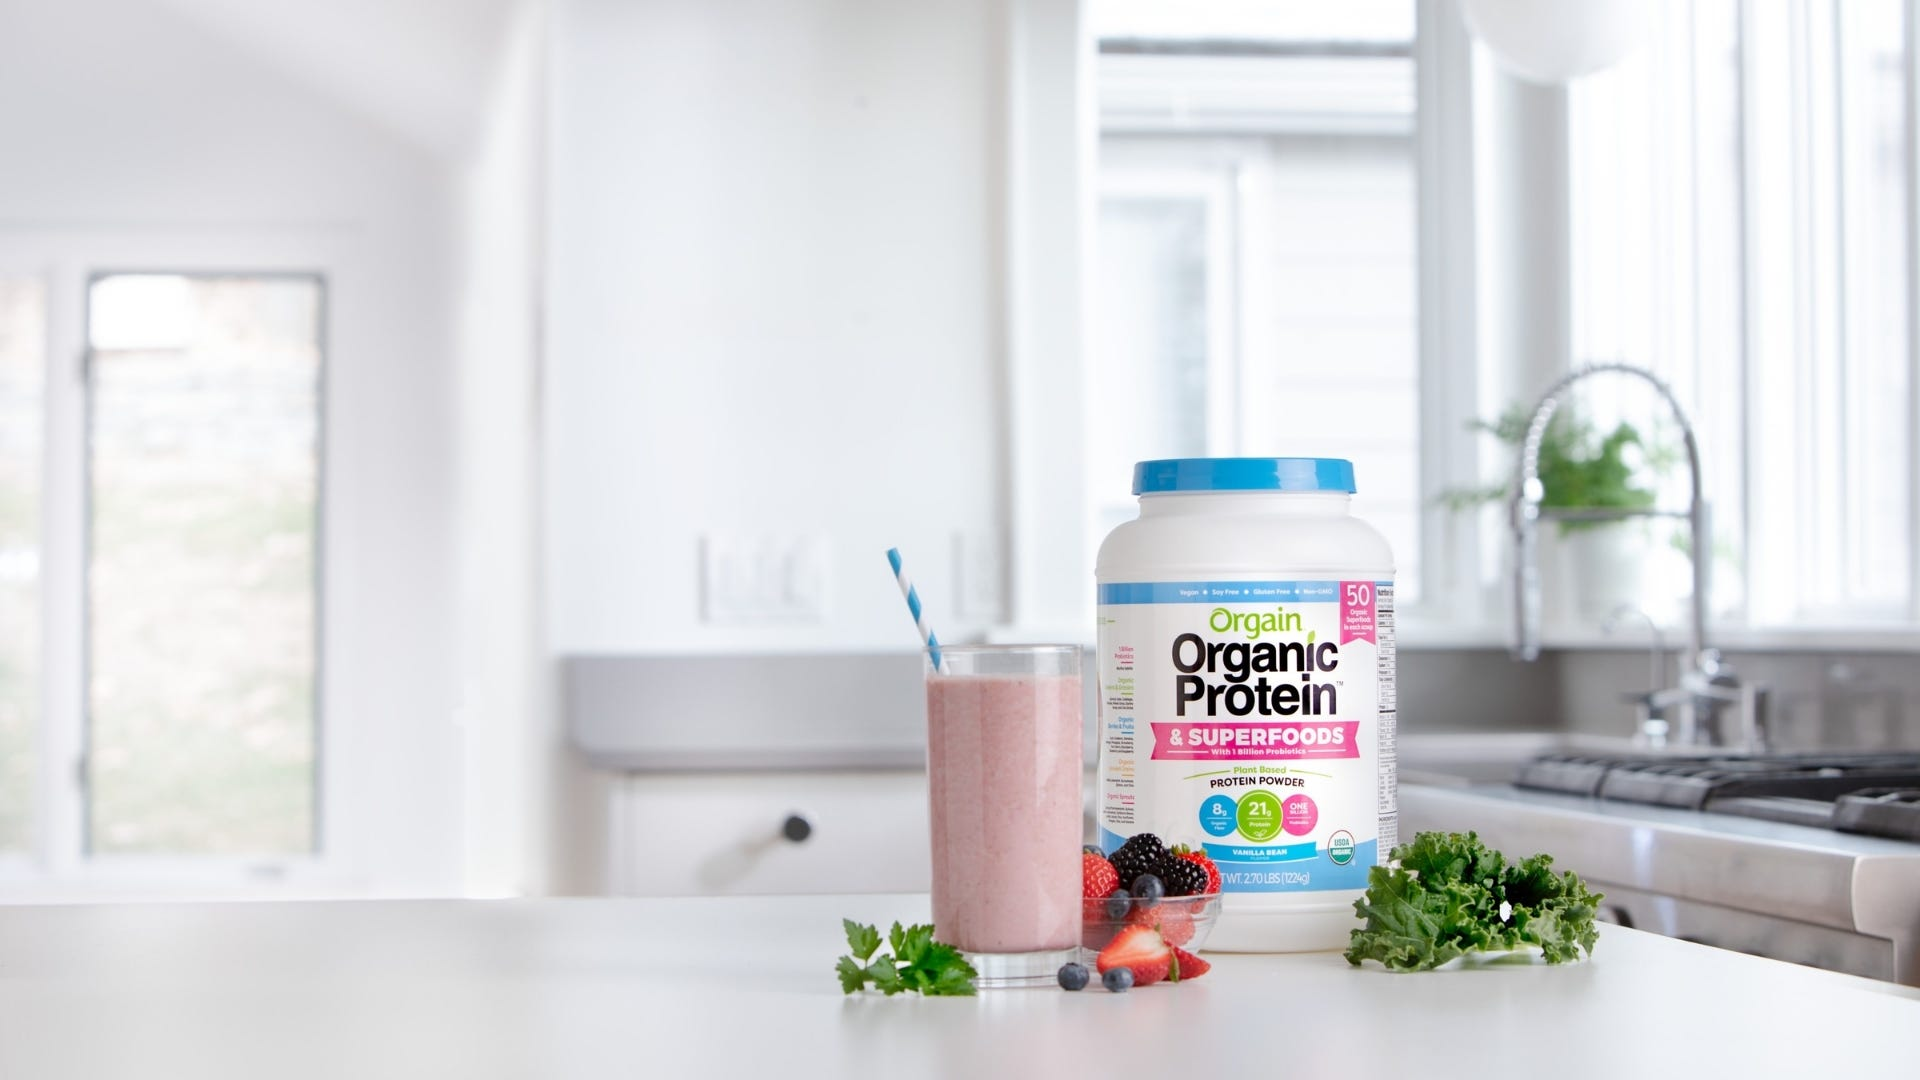 A container of Orgain Organic Protein and Superfoods next to a smoothie, leafy greens, strawberries, and blueberries.